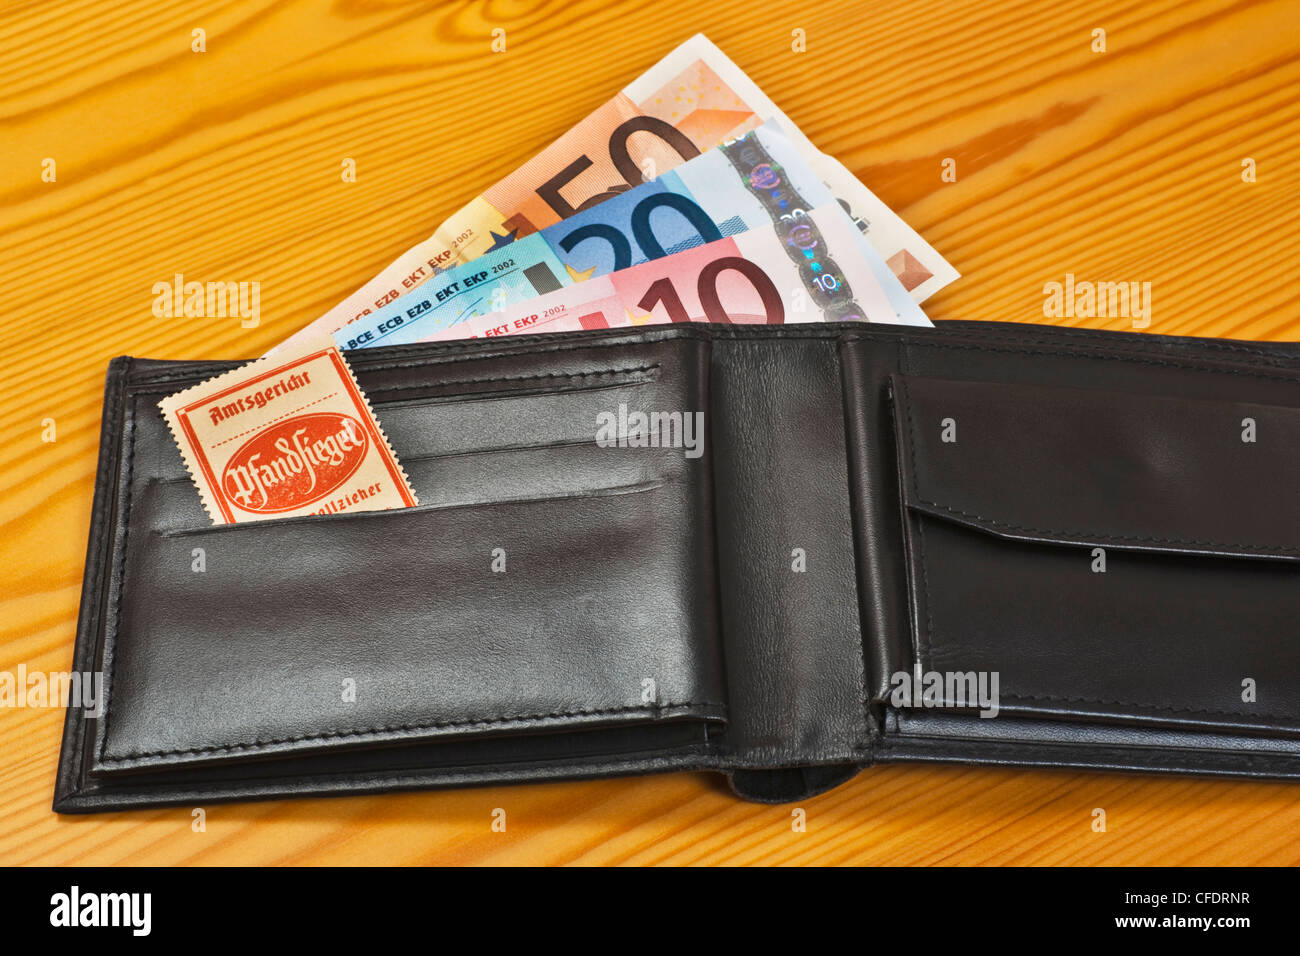 An open purse with Euro Banknotes, inside is a bailiff's seal for distraint of goods. Stock Photo